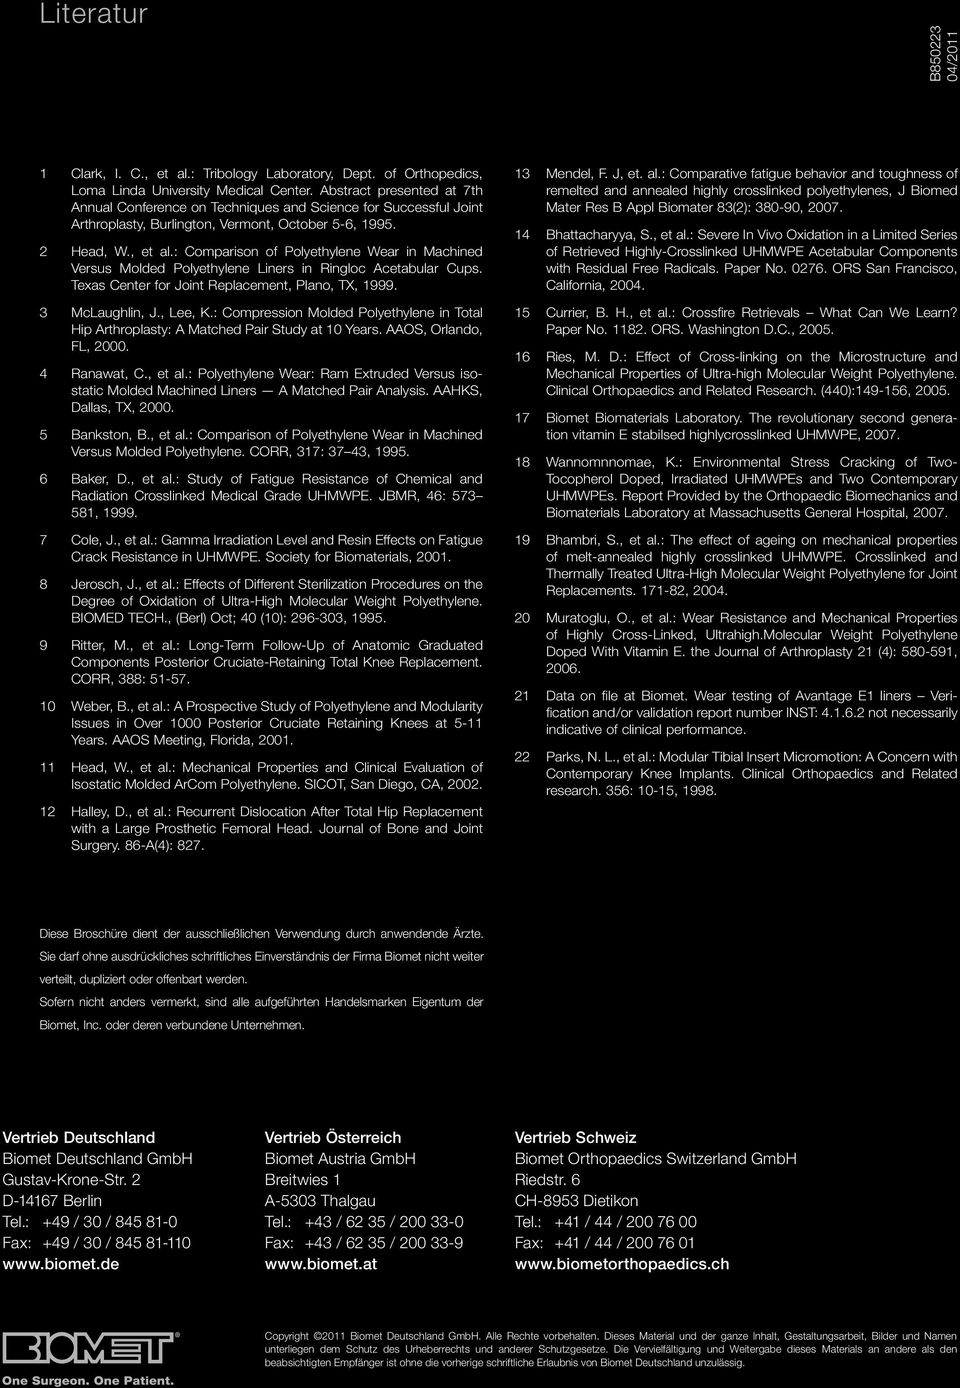 : Comparison of Polyethylene Wear in Machined Versus Molded Polyethylene Liners in Ringloc Acetabular Cups. Texas Center for Joint Replacement, Plano, TX, 1999. 3 McLaughlin, J., Lee, K.